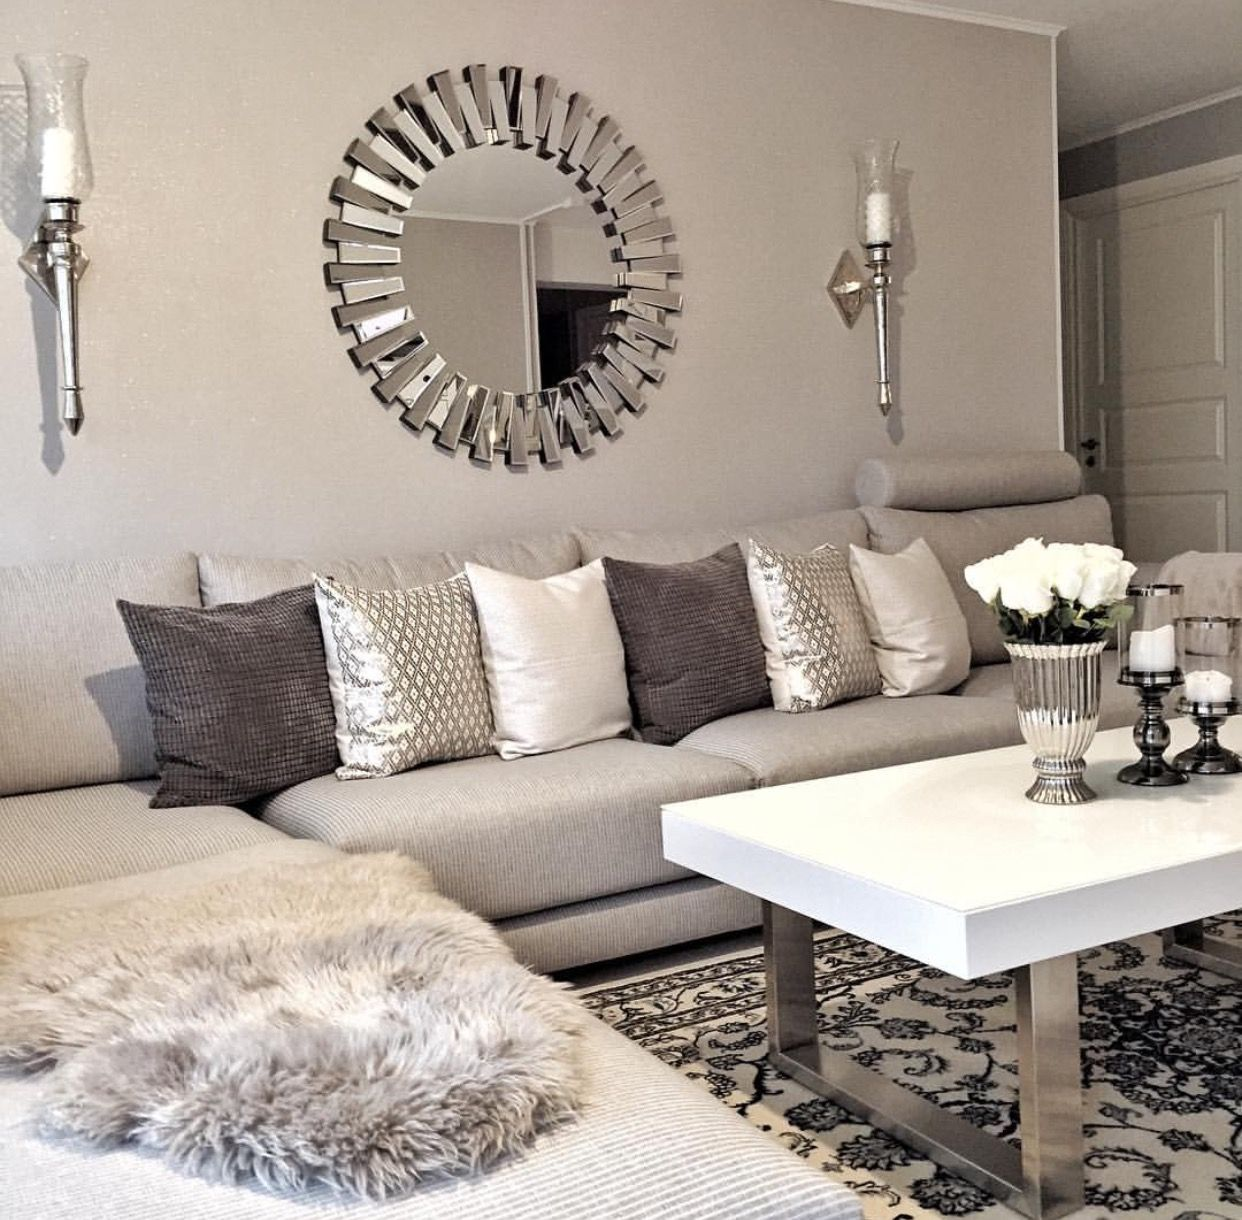 25 Swoon Worthy Glam Living Room Decor Ideas: Pin By Swoon...Are You Worthy? Jewelry Co. On Decor Dujour